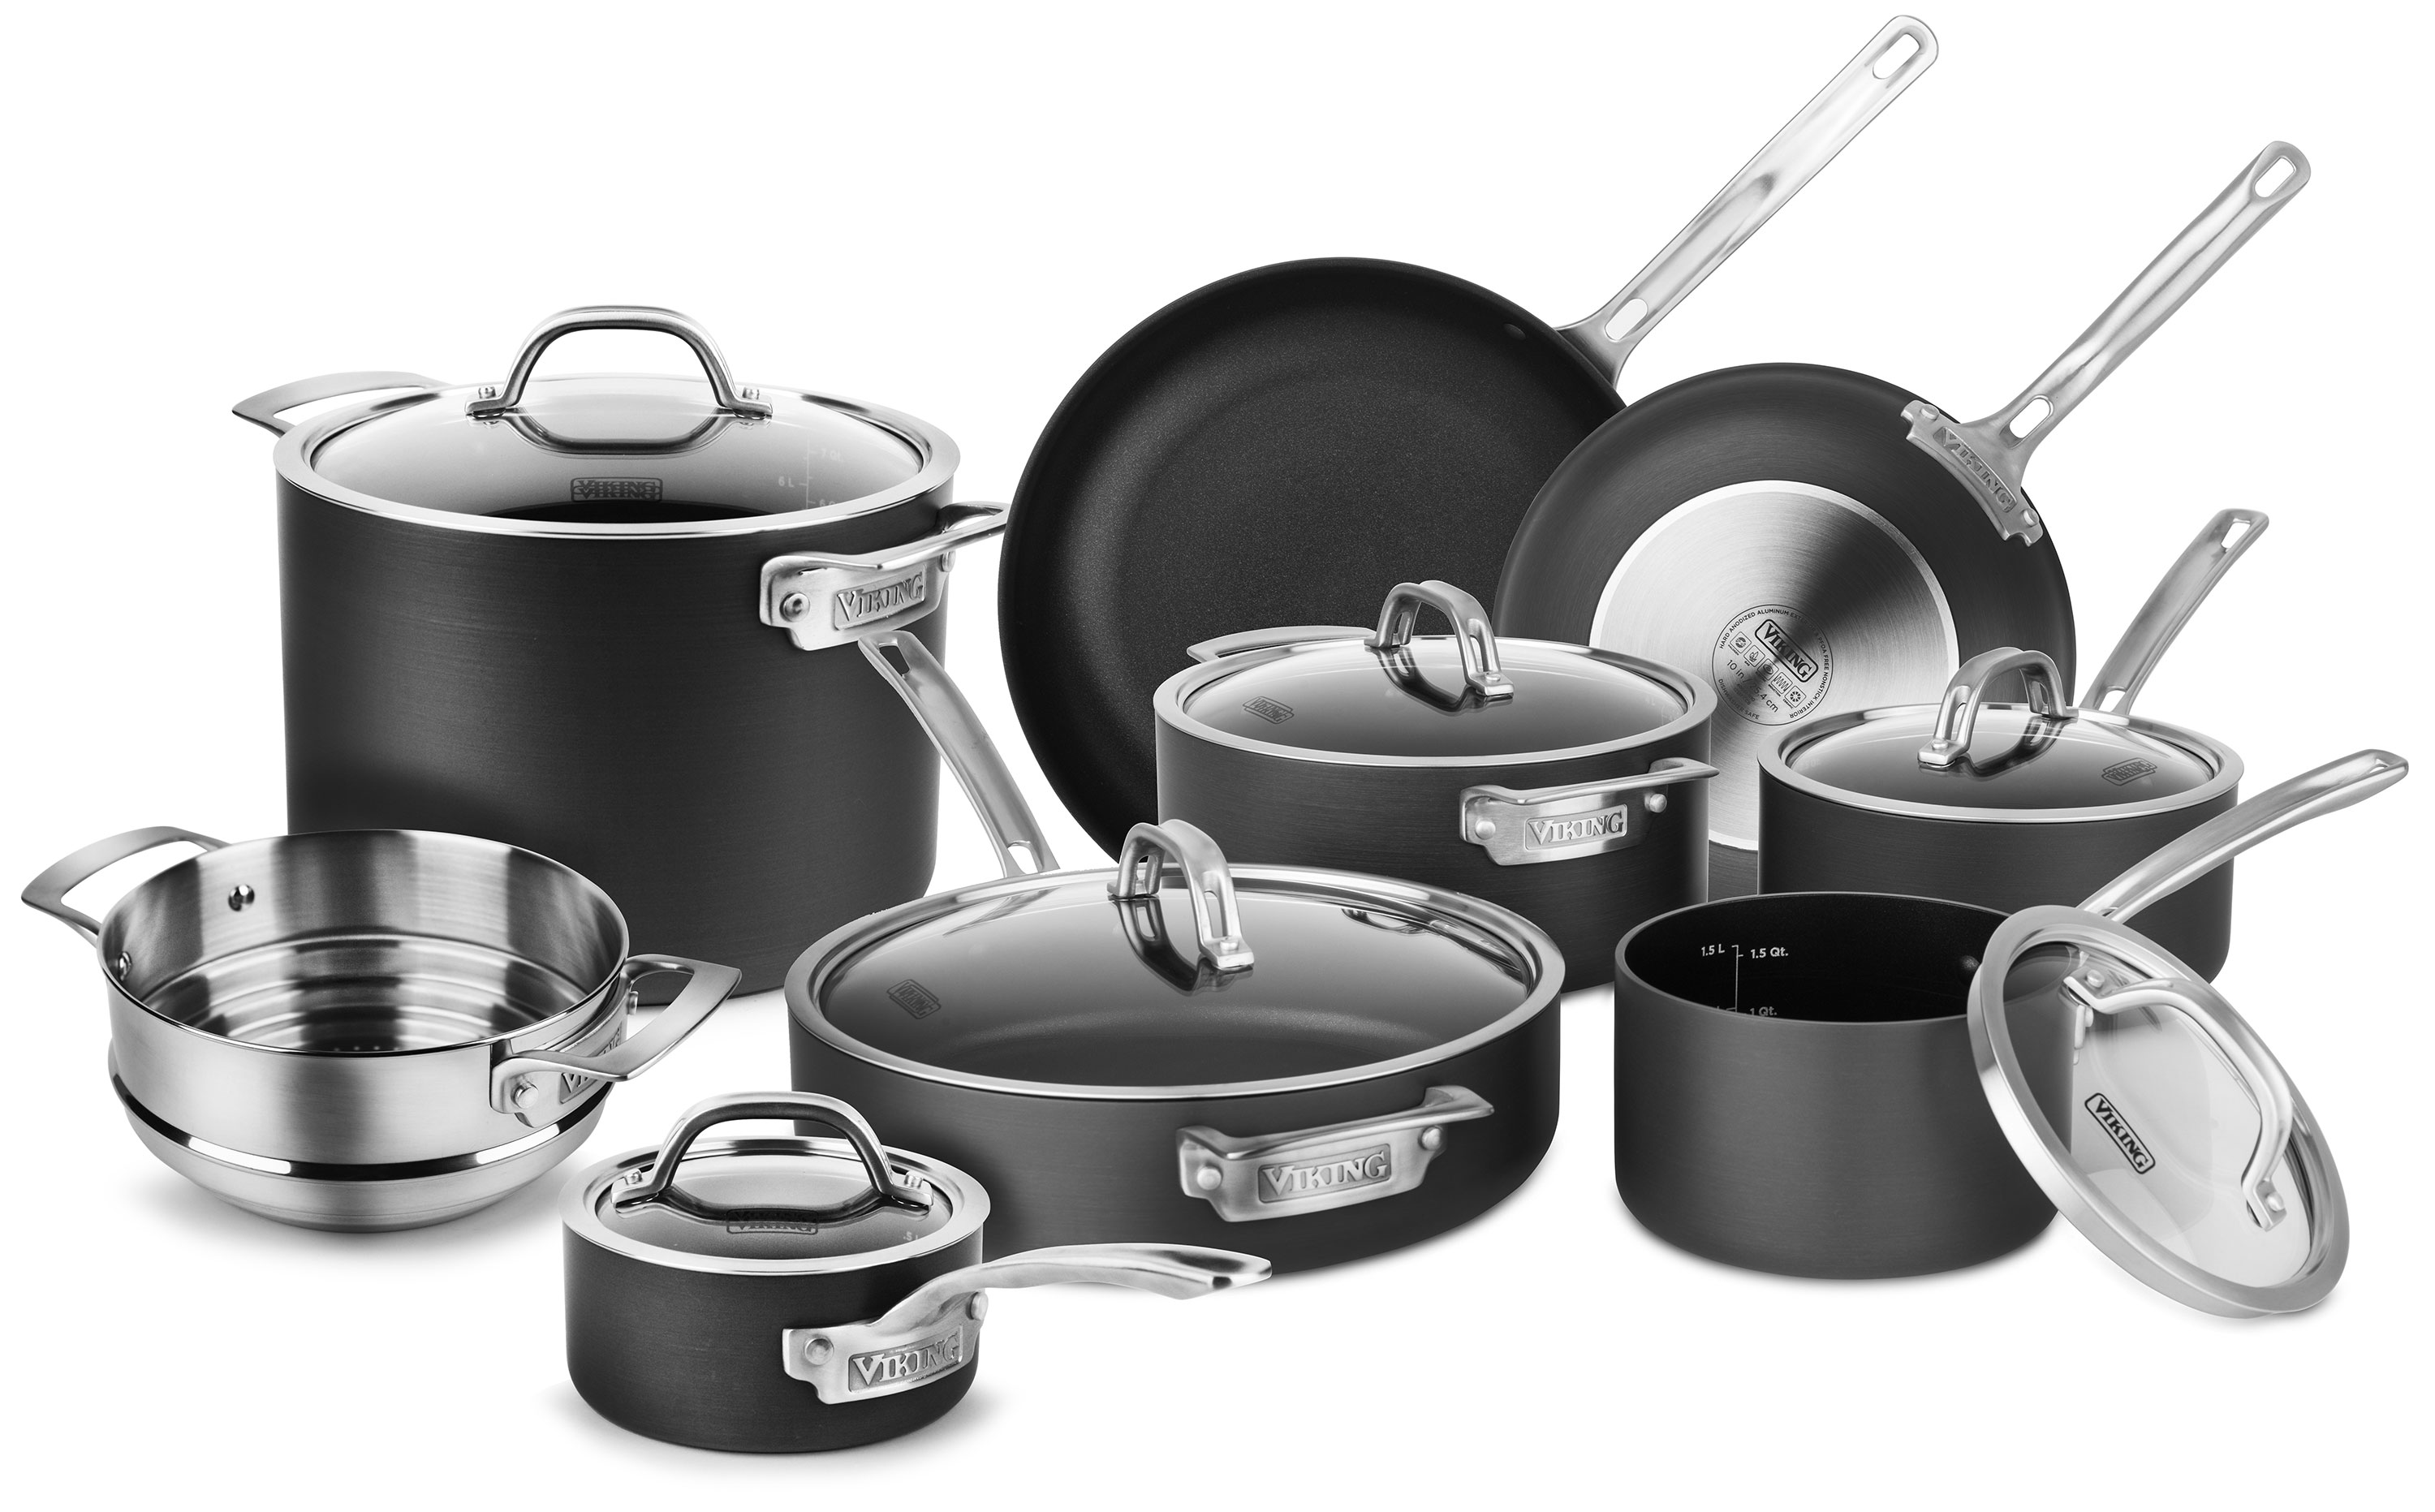 Viking Nonstick Cookware Set 14 Piece Hard Anodized